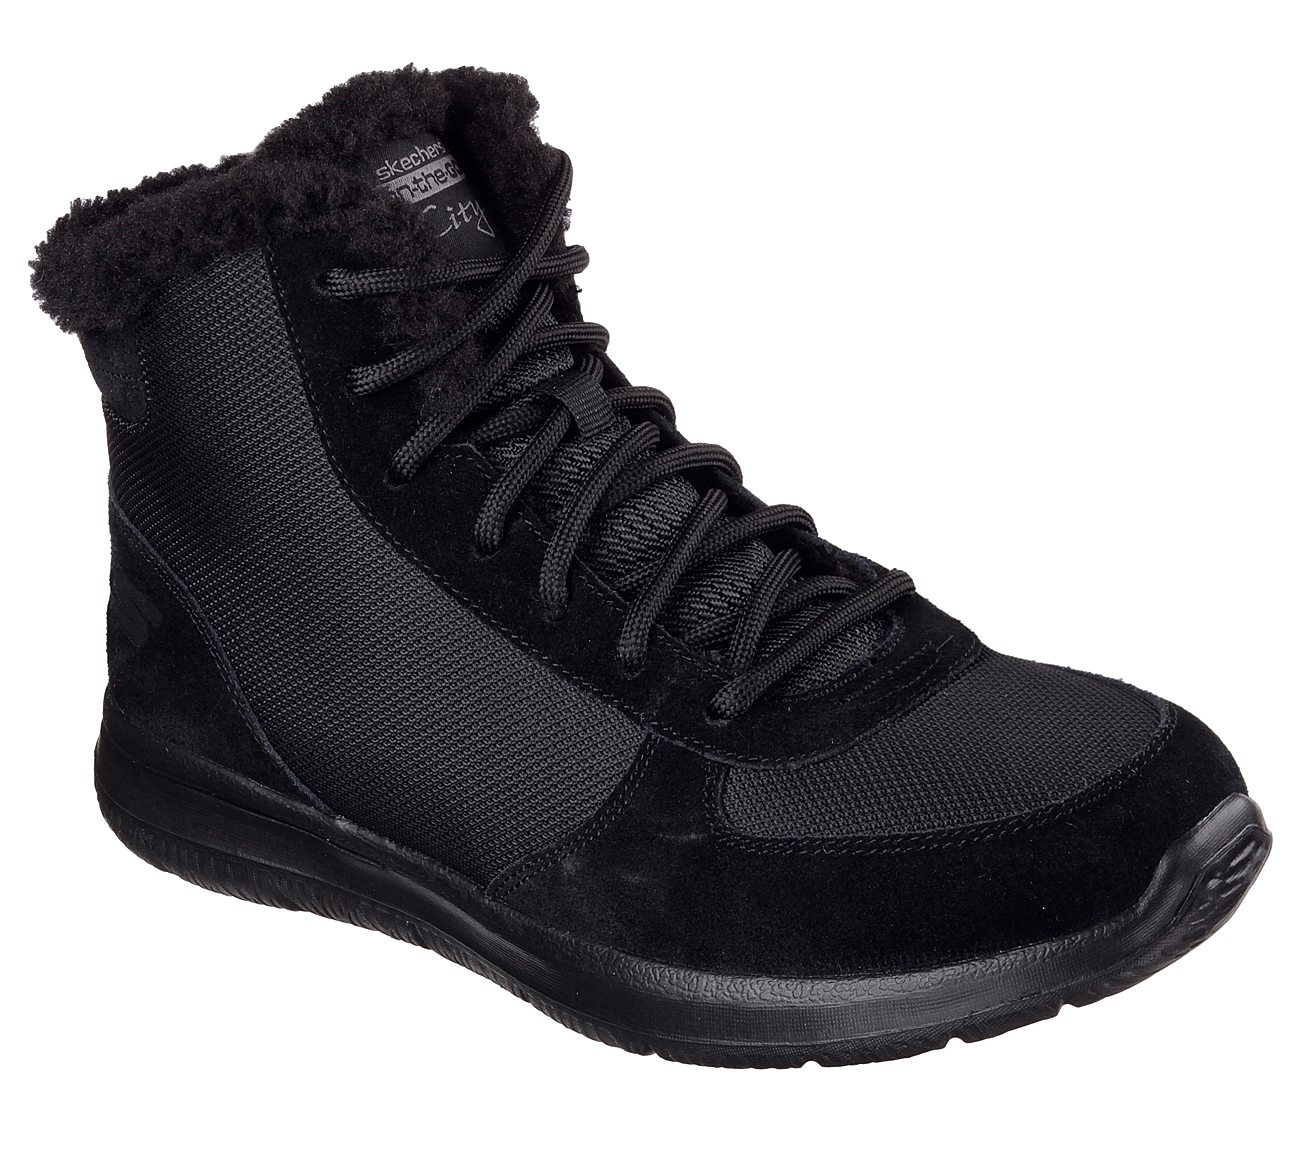 SKECHERS ON THE GO CITY SHOES